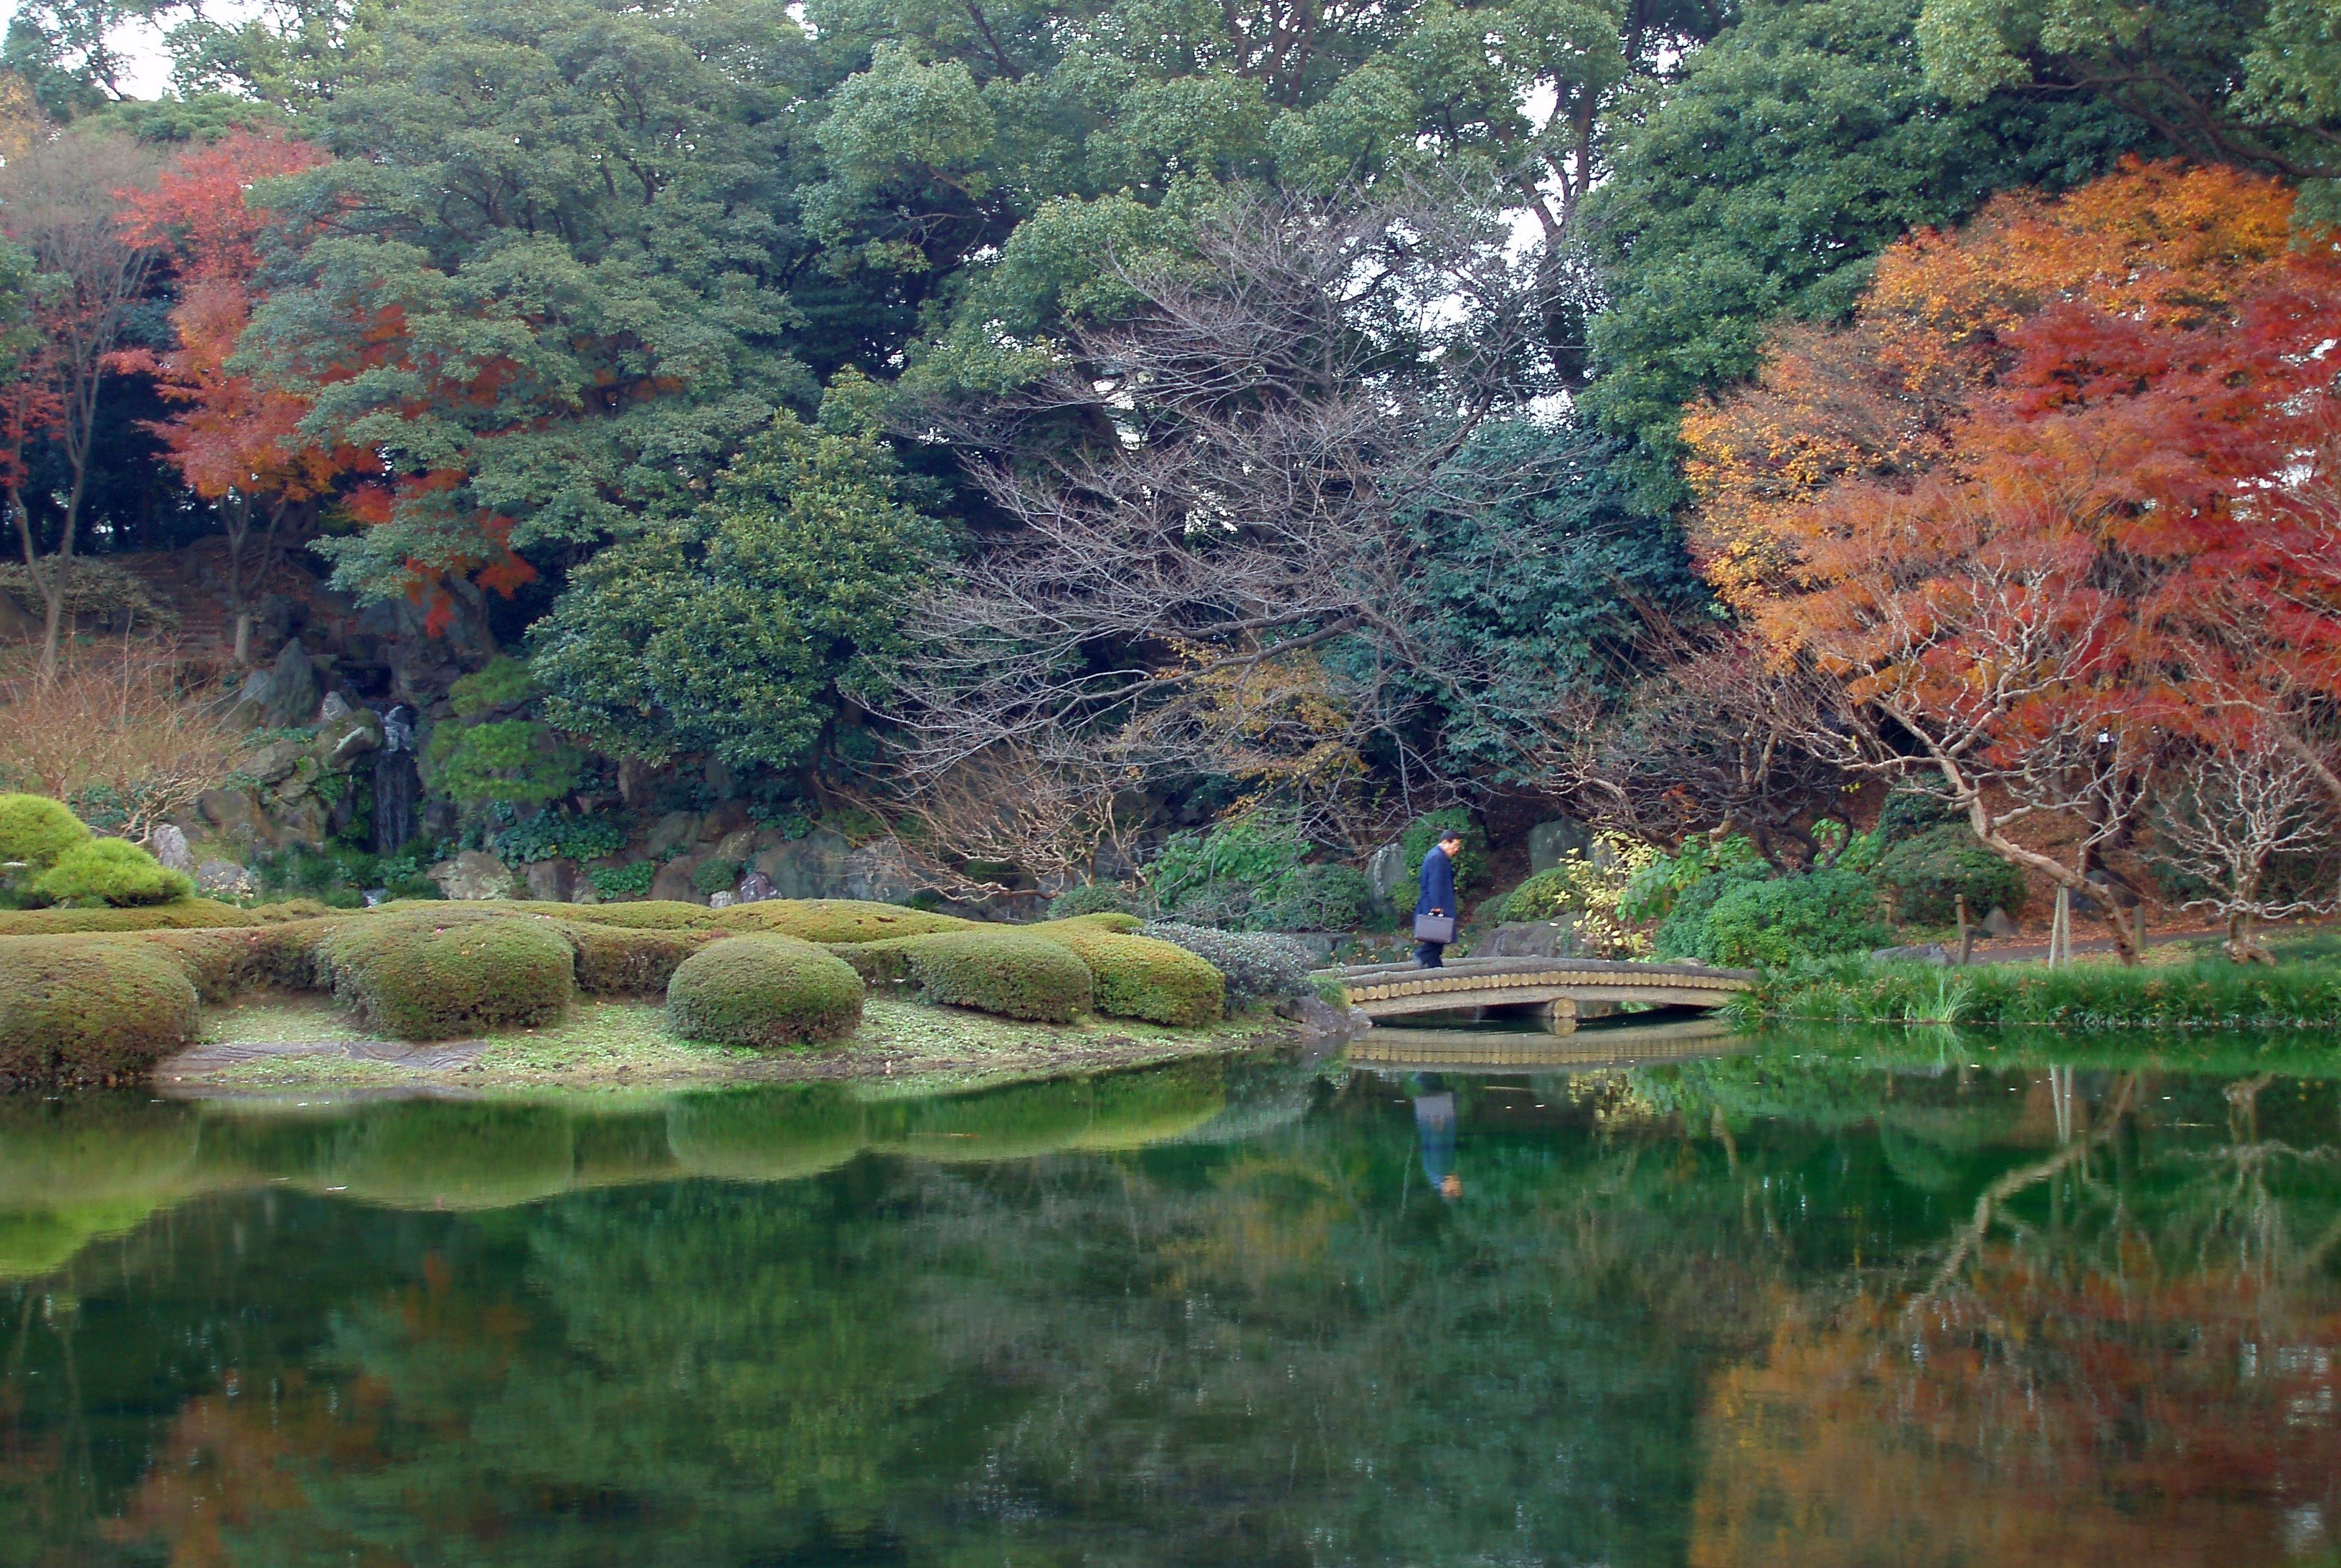 ornate japanese style gardens in a tokyo park including a reflecting lake